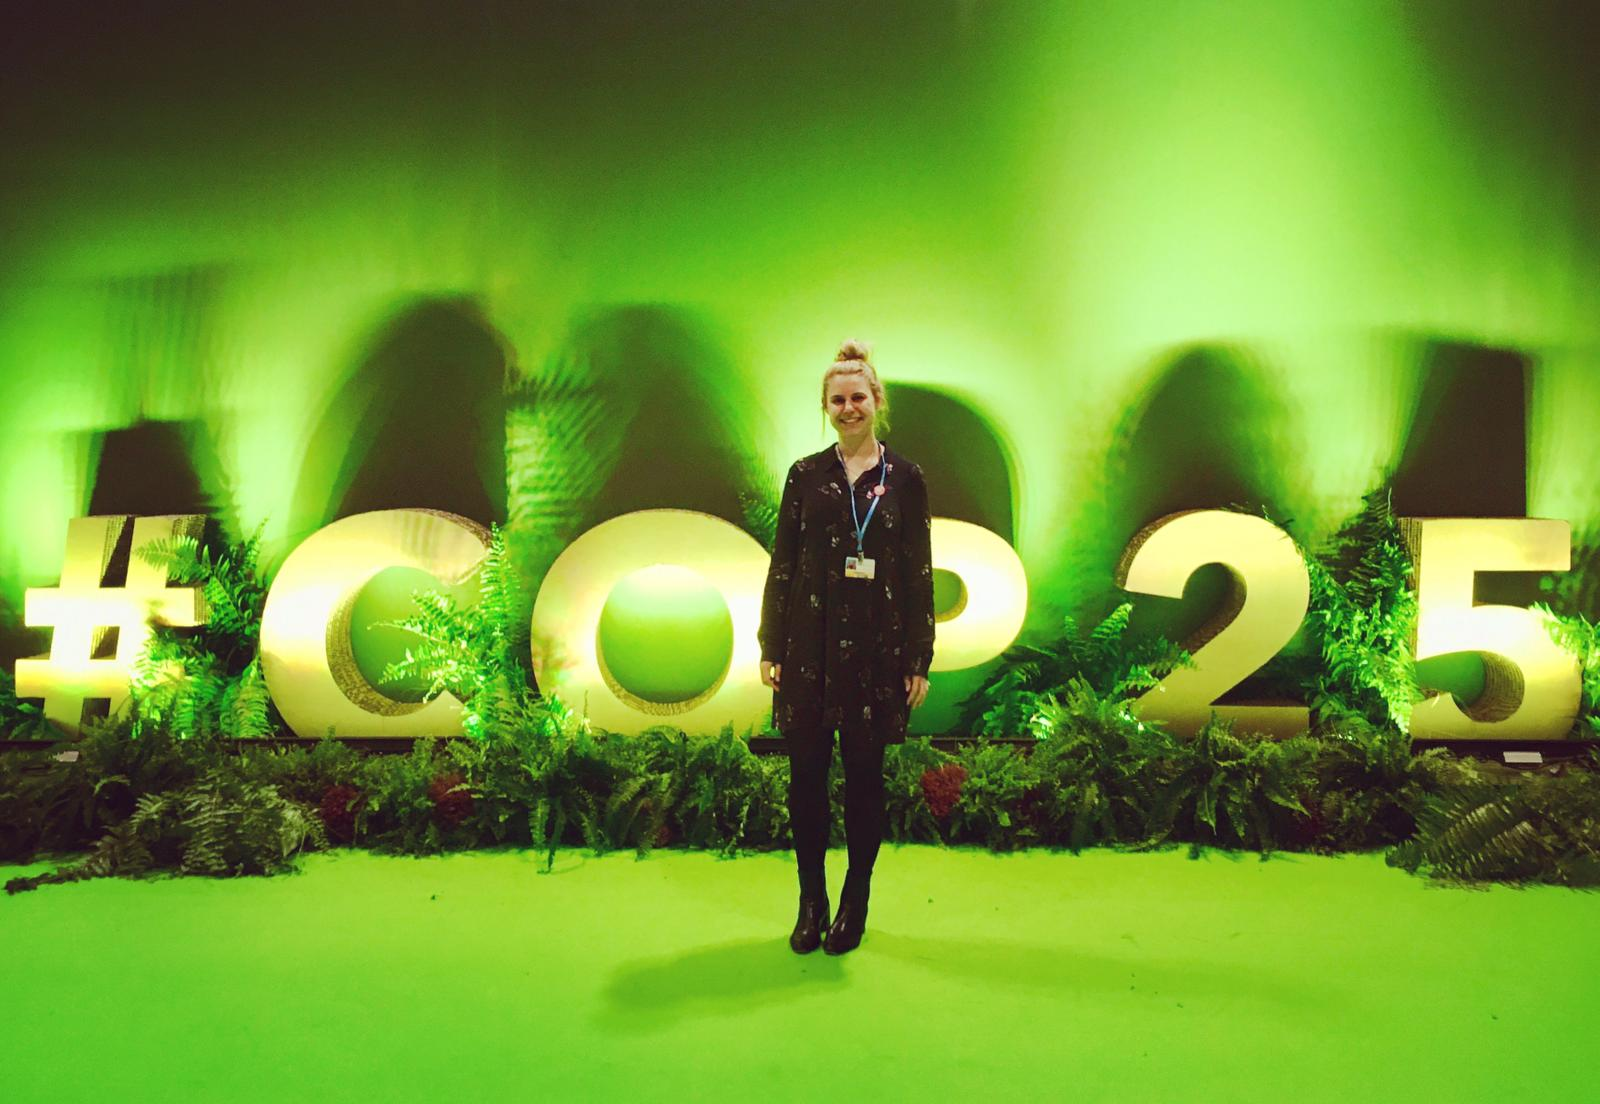 Milly Burgess has arrived to #COP25